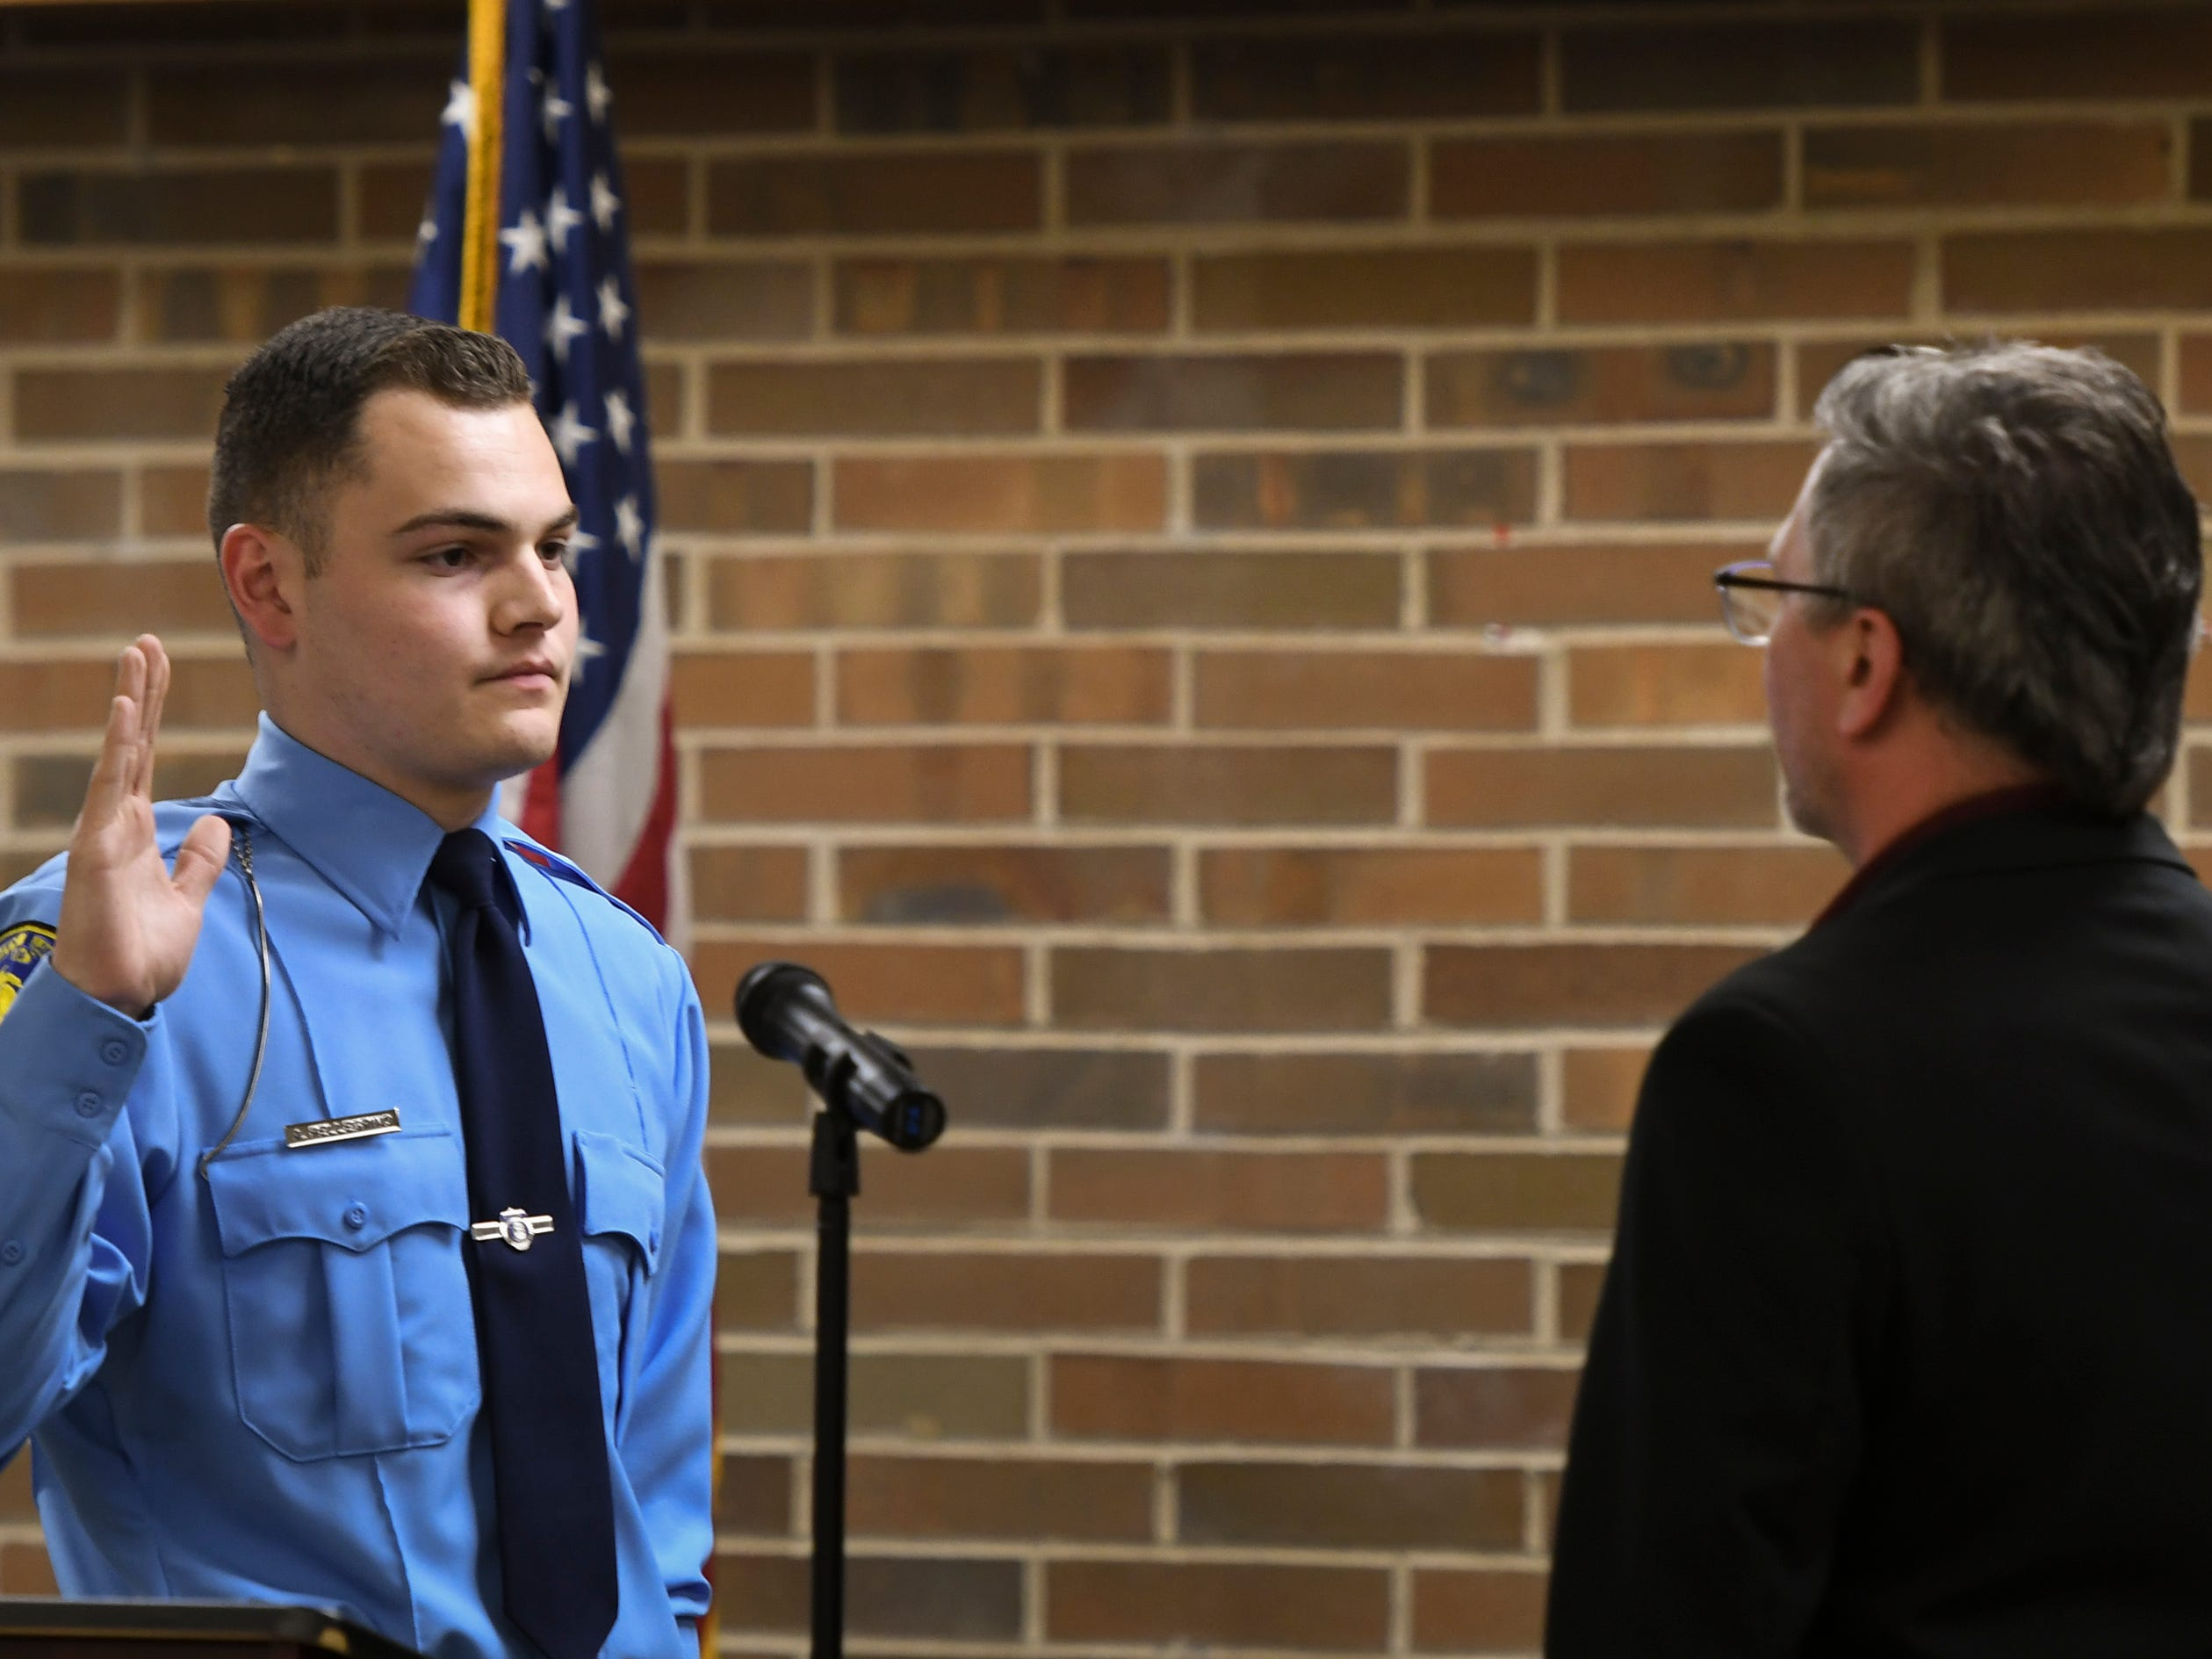 A.J. Pelligrino is sworn in by Lansing City Clerk Chris Swope, Monday, May 6, 2019, during the swearing in ceremony at the LPD Operations Center in Lansing.  Pelligrino served as an Explorer with LPD prior to the police academy.